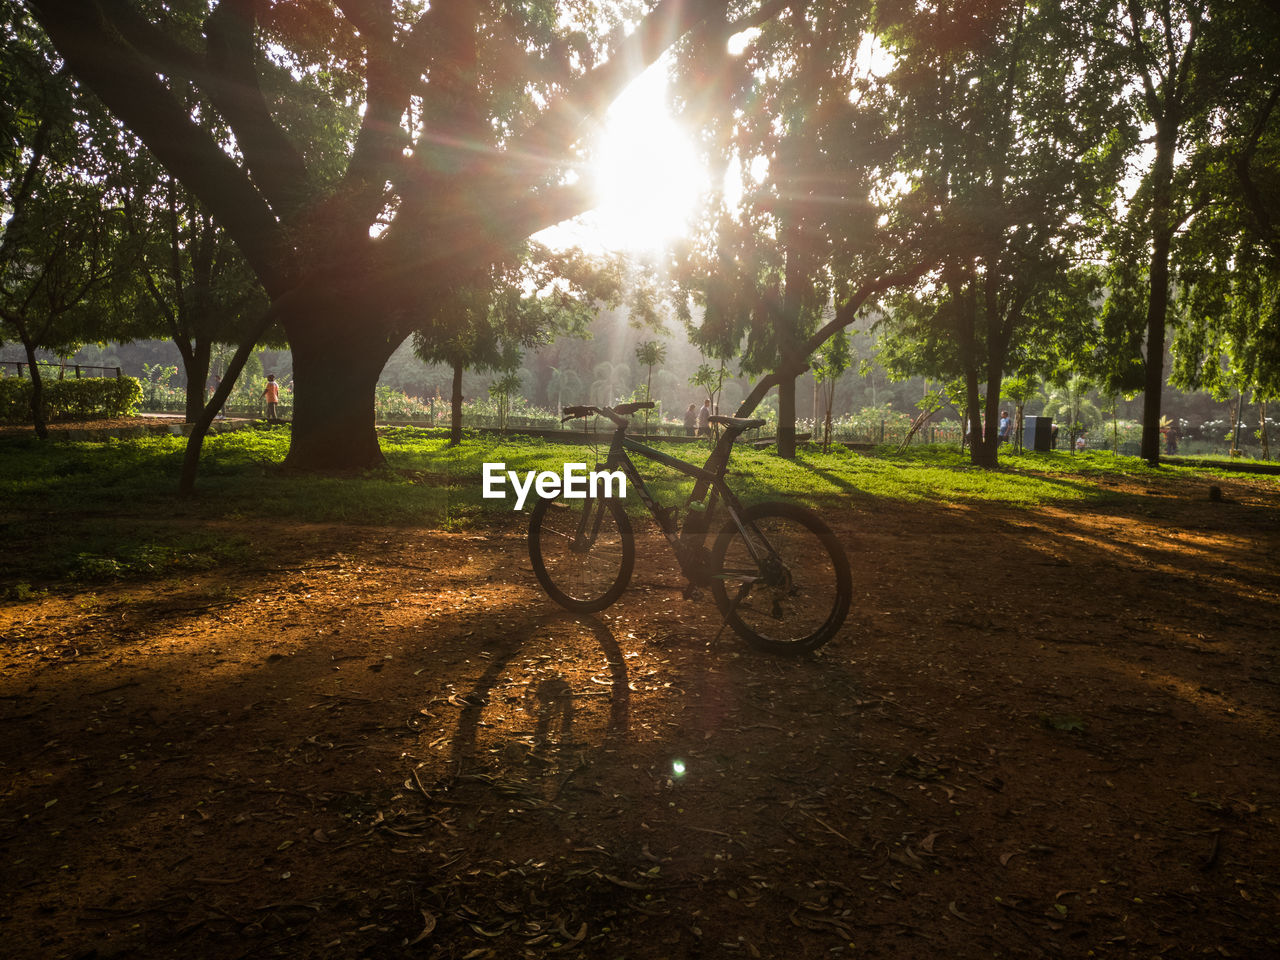 tree, sunlight, plant, bicycle, nature, sunbeam, lens flare, land, transportation, field, land vehicle, mode of transportation, sun, grass, tranquility, day, park, growth, sunny, sky, no people, outdoors, bright